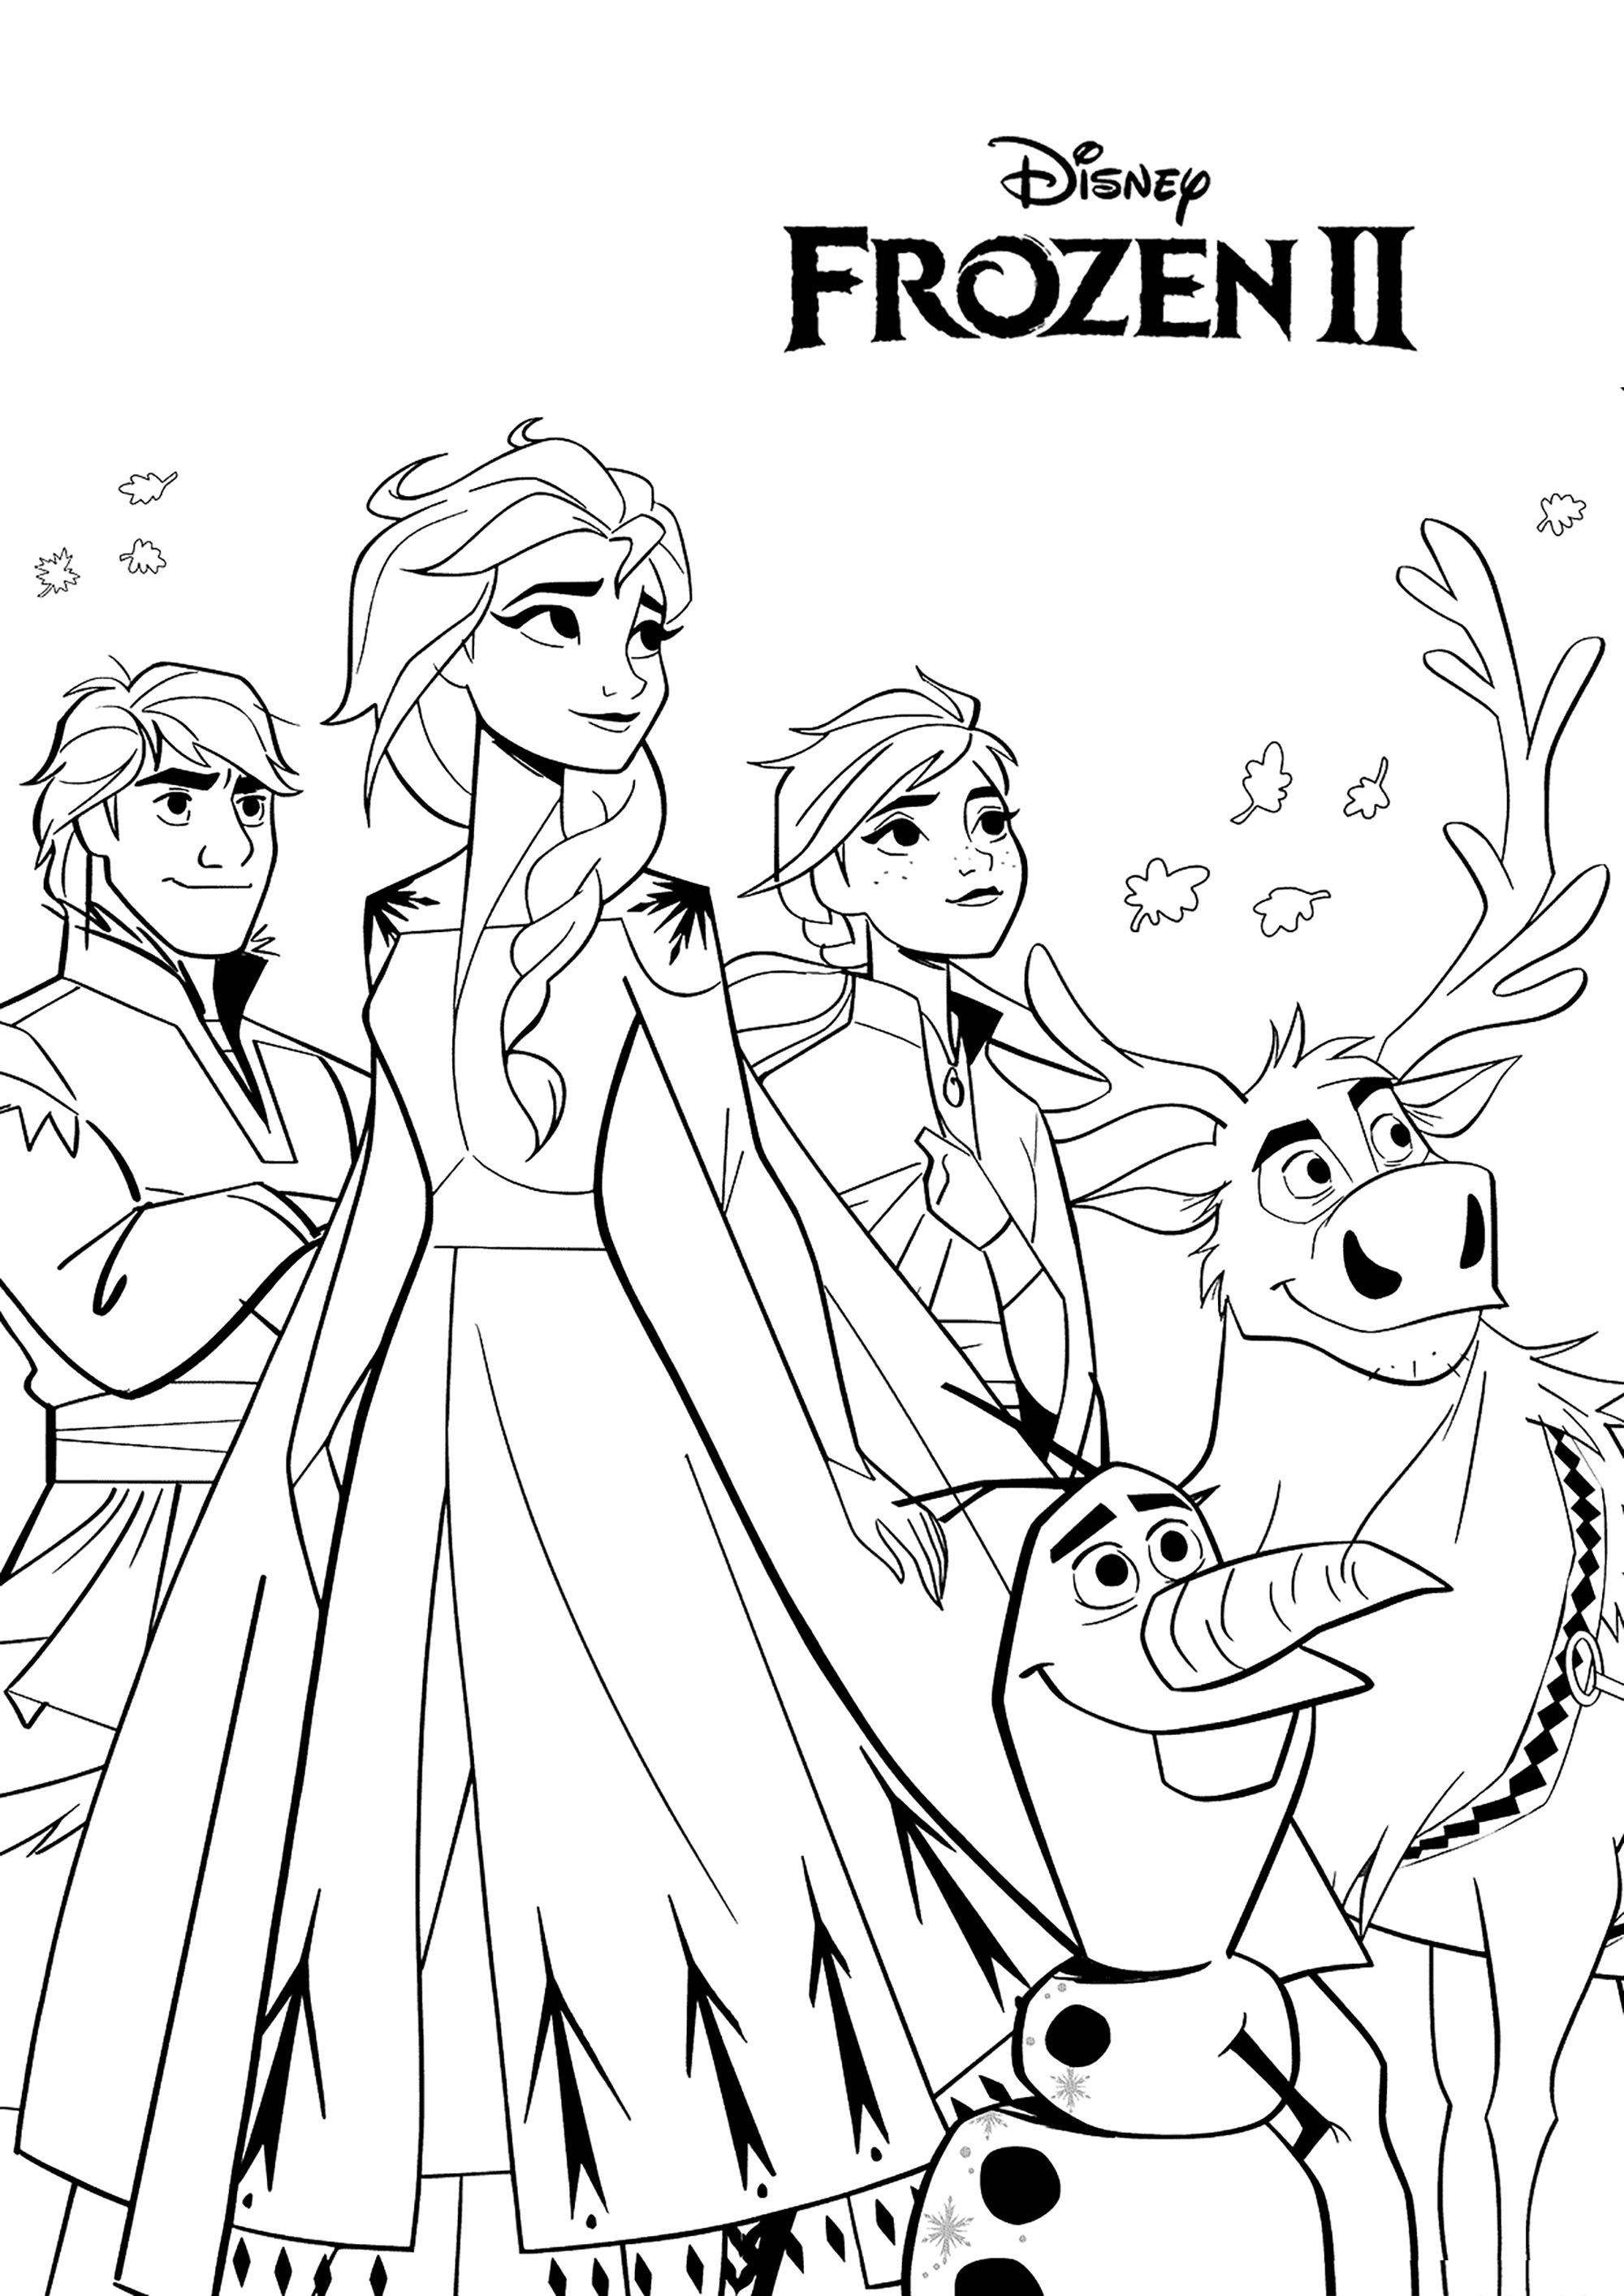 Frozen 2 To Print Frozen 2 Kids Coloring Pages